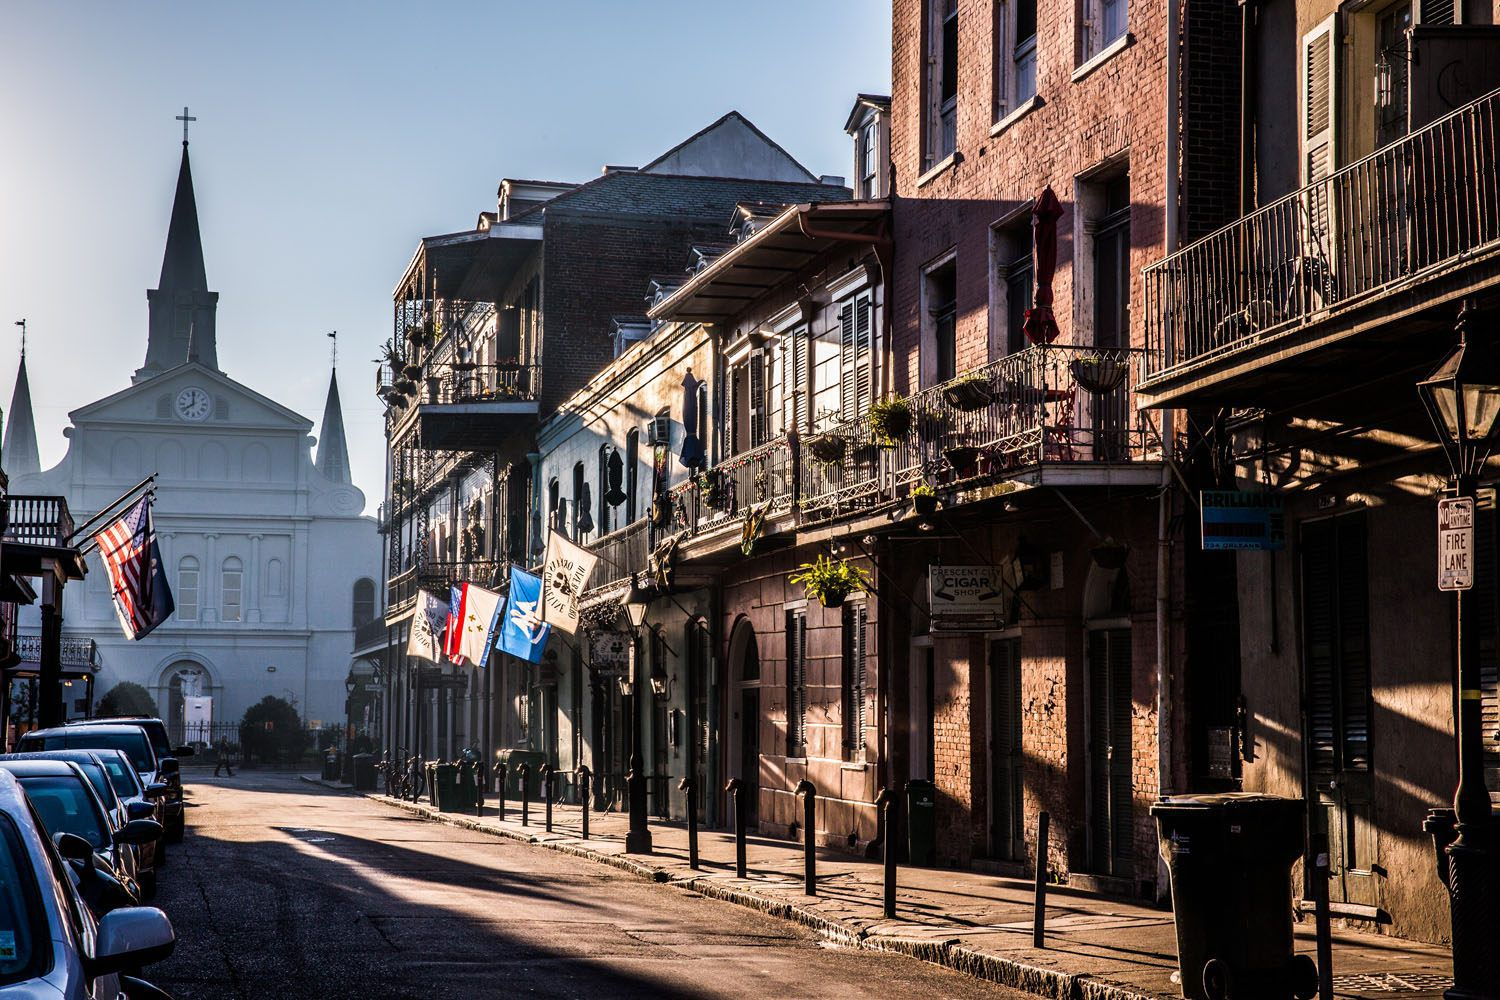 NOLA at Sunrise